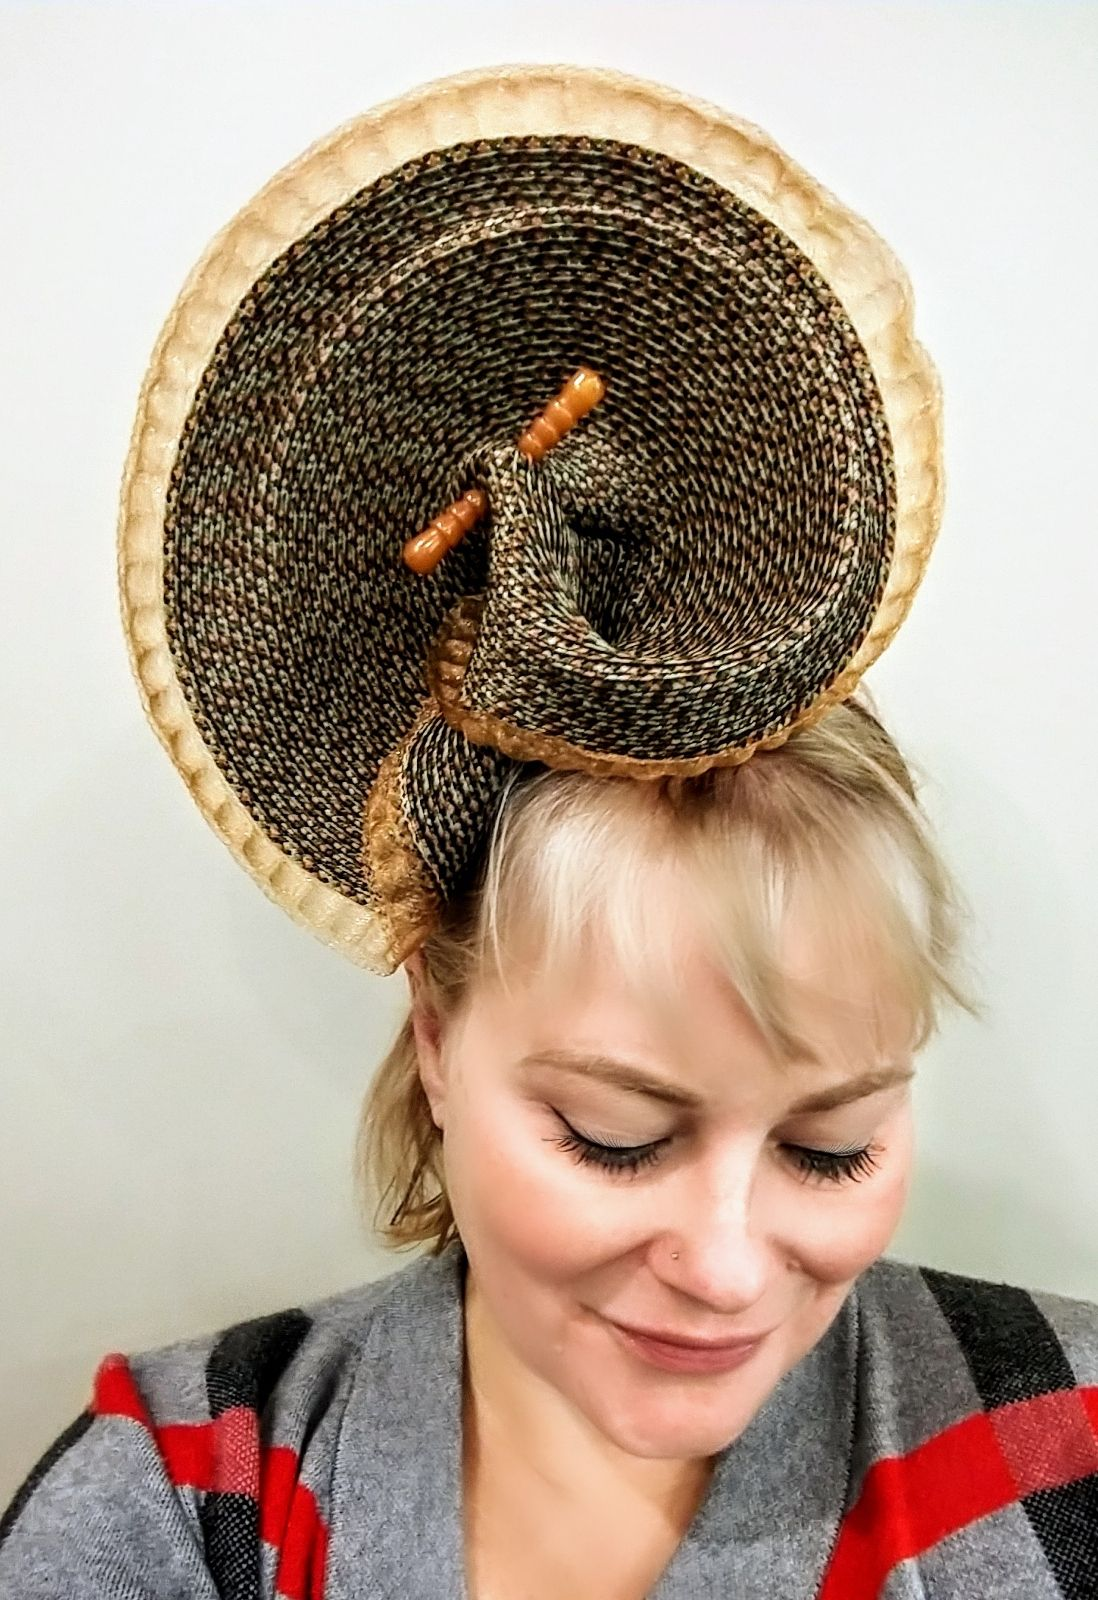 Fall Leaves Bring Fall Hats By Forme Millinery Hand Sculpted On An 1800 Braid Machine Www Formemillinery Com Fall Handmade Hat Millinery Hats Millinery